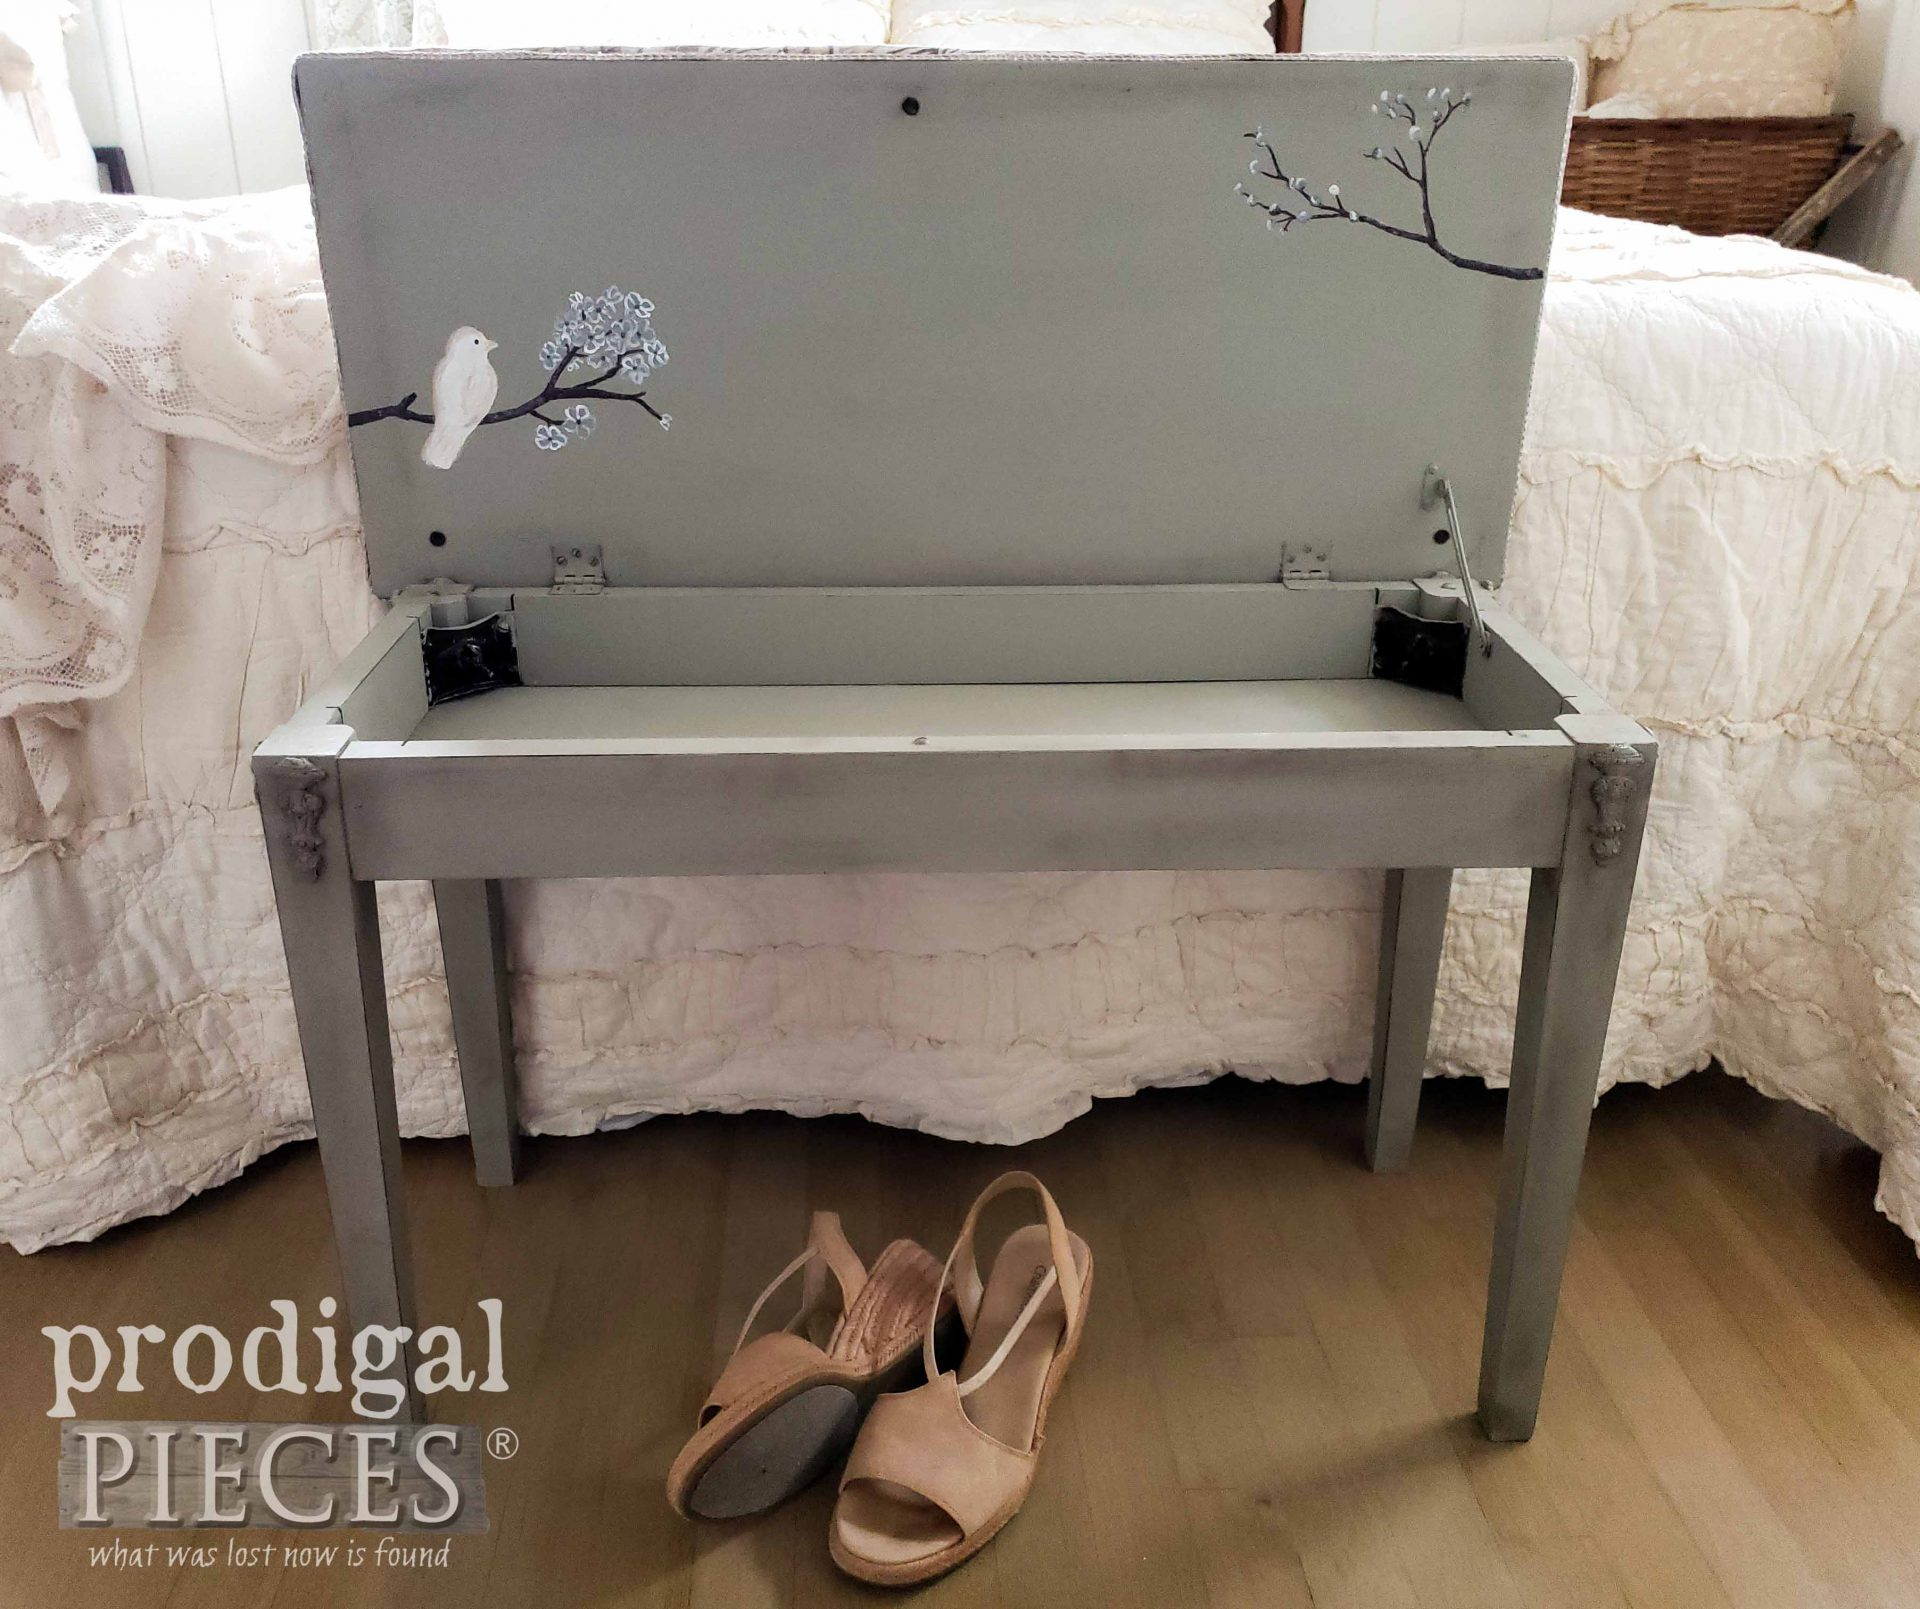 Hand-Painted Piano Bench with Bird & Branches by Larissa of Prodigal Pieces | prodigalpieces.com #prodigalpieces #home #furniture #diy #homedecor